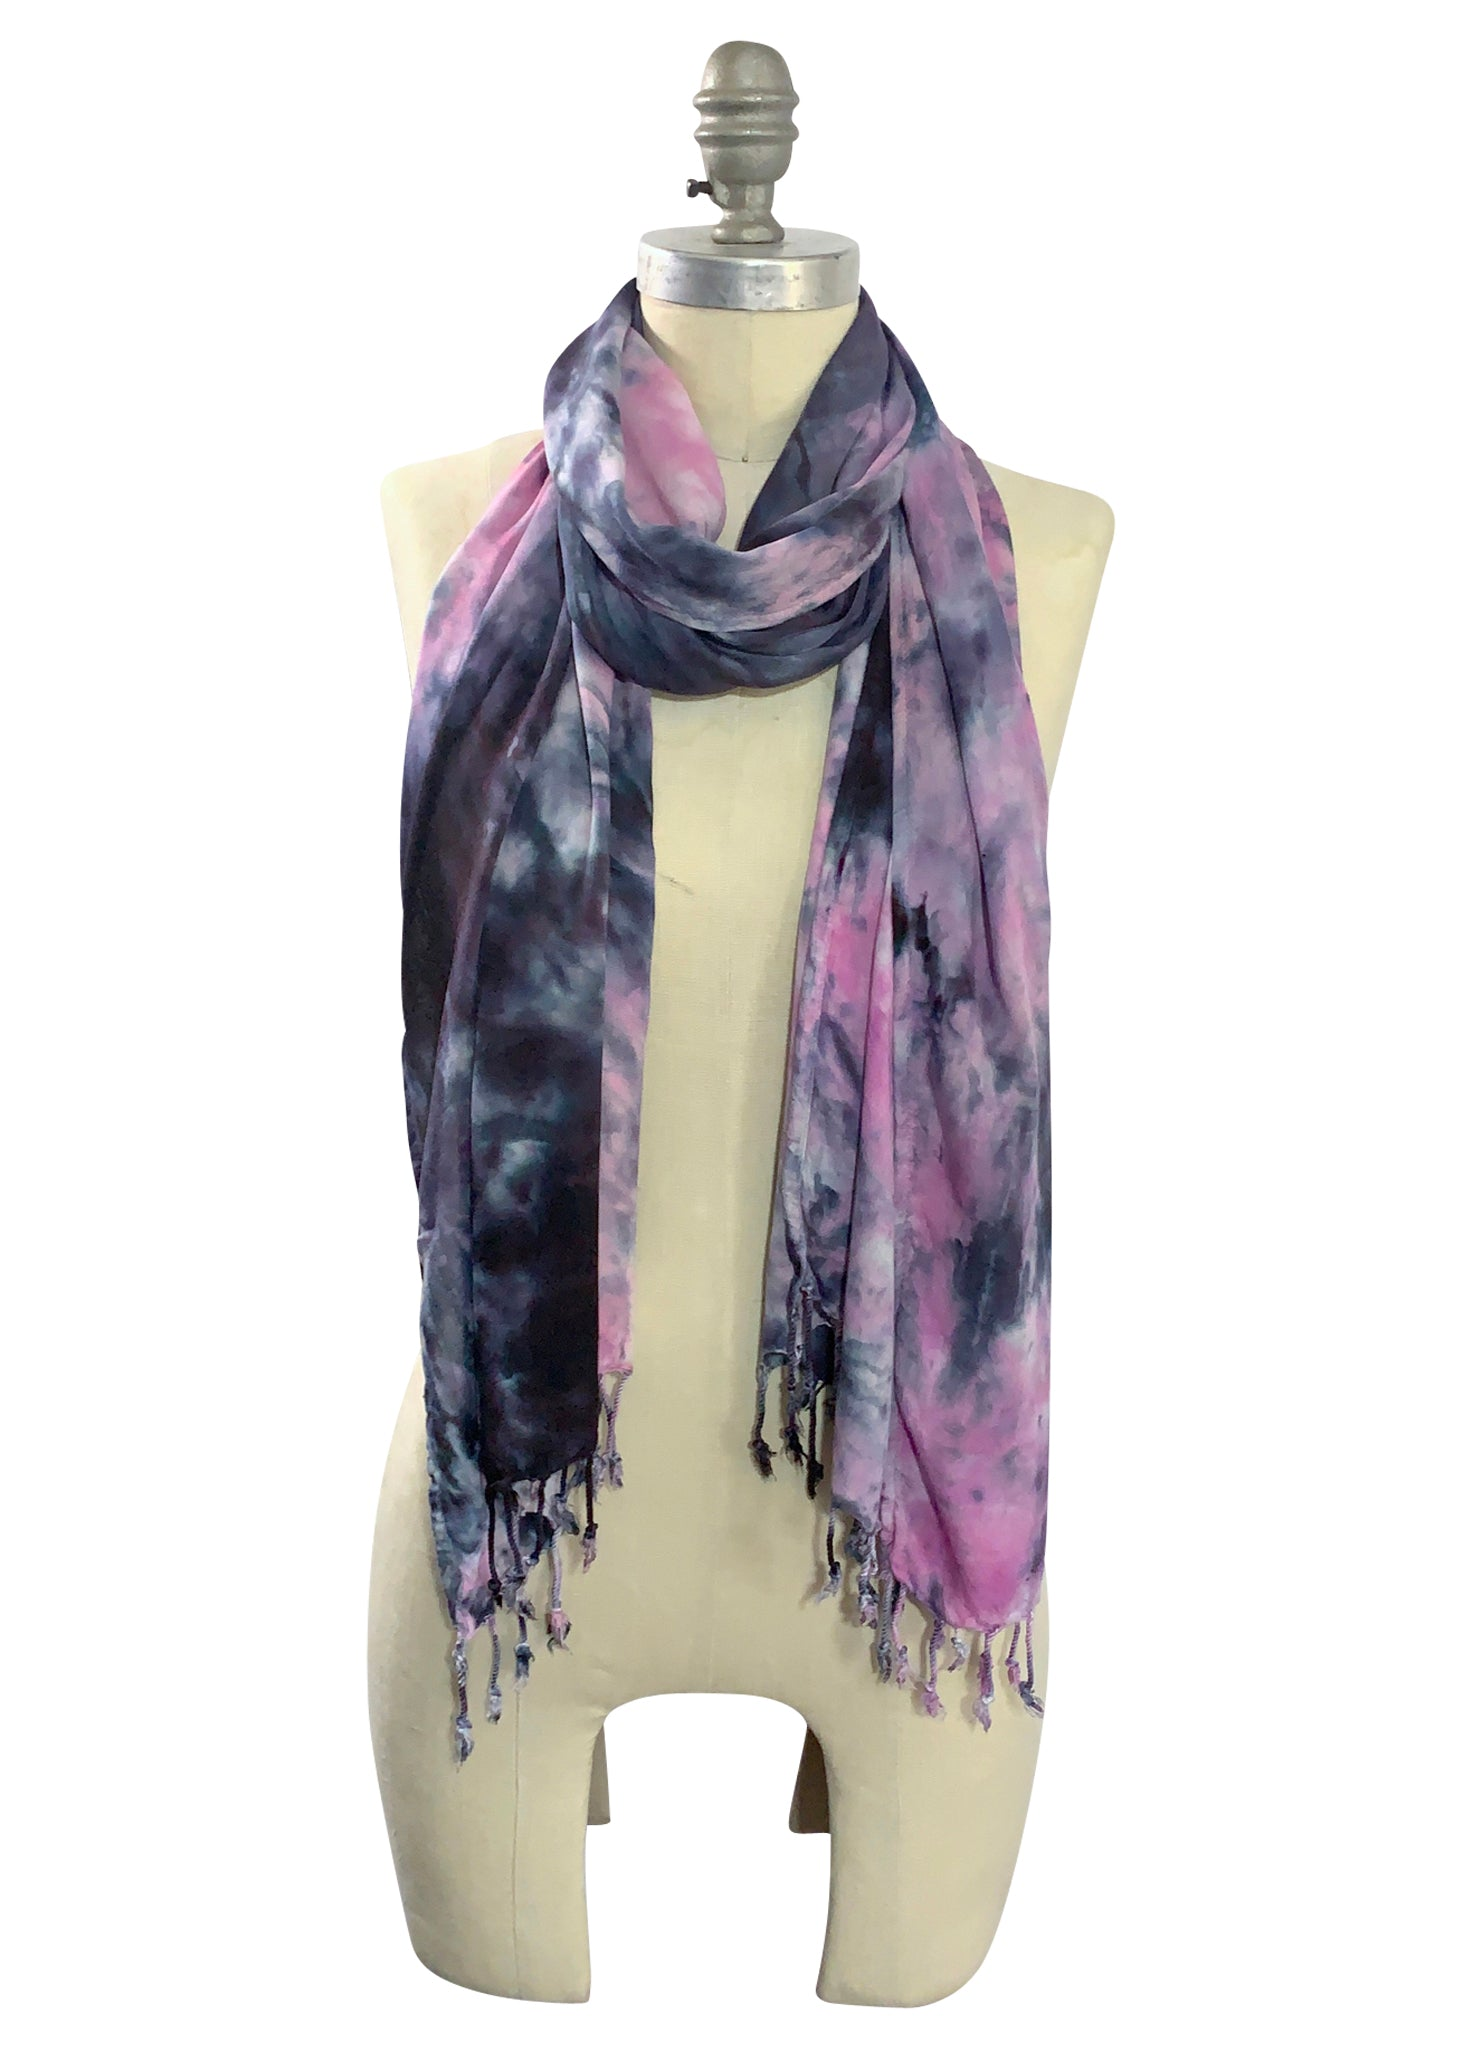 Oblong Scarf with Fringe in Pinks and Black -  - Dyetology